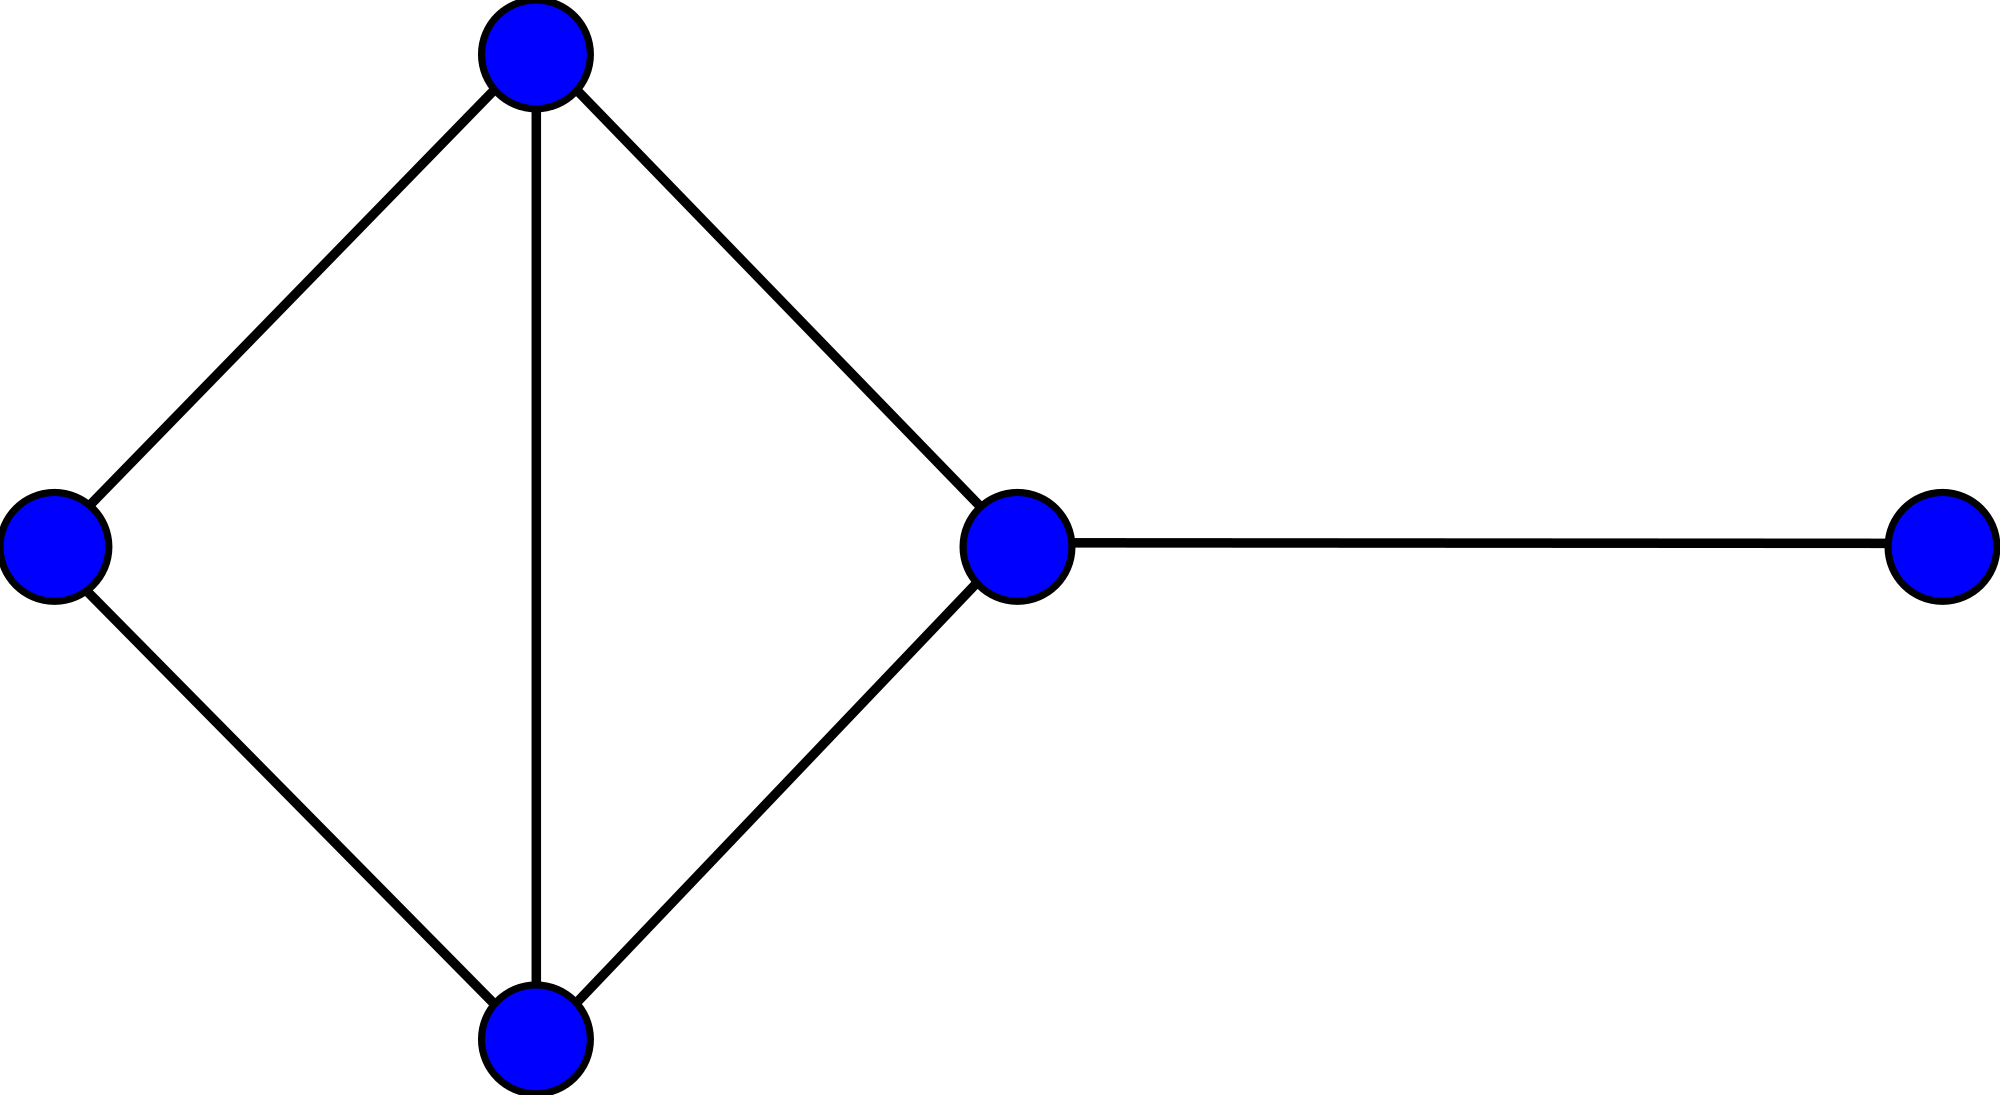 Svg graph generic. File kite wikimedia commons